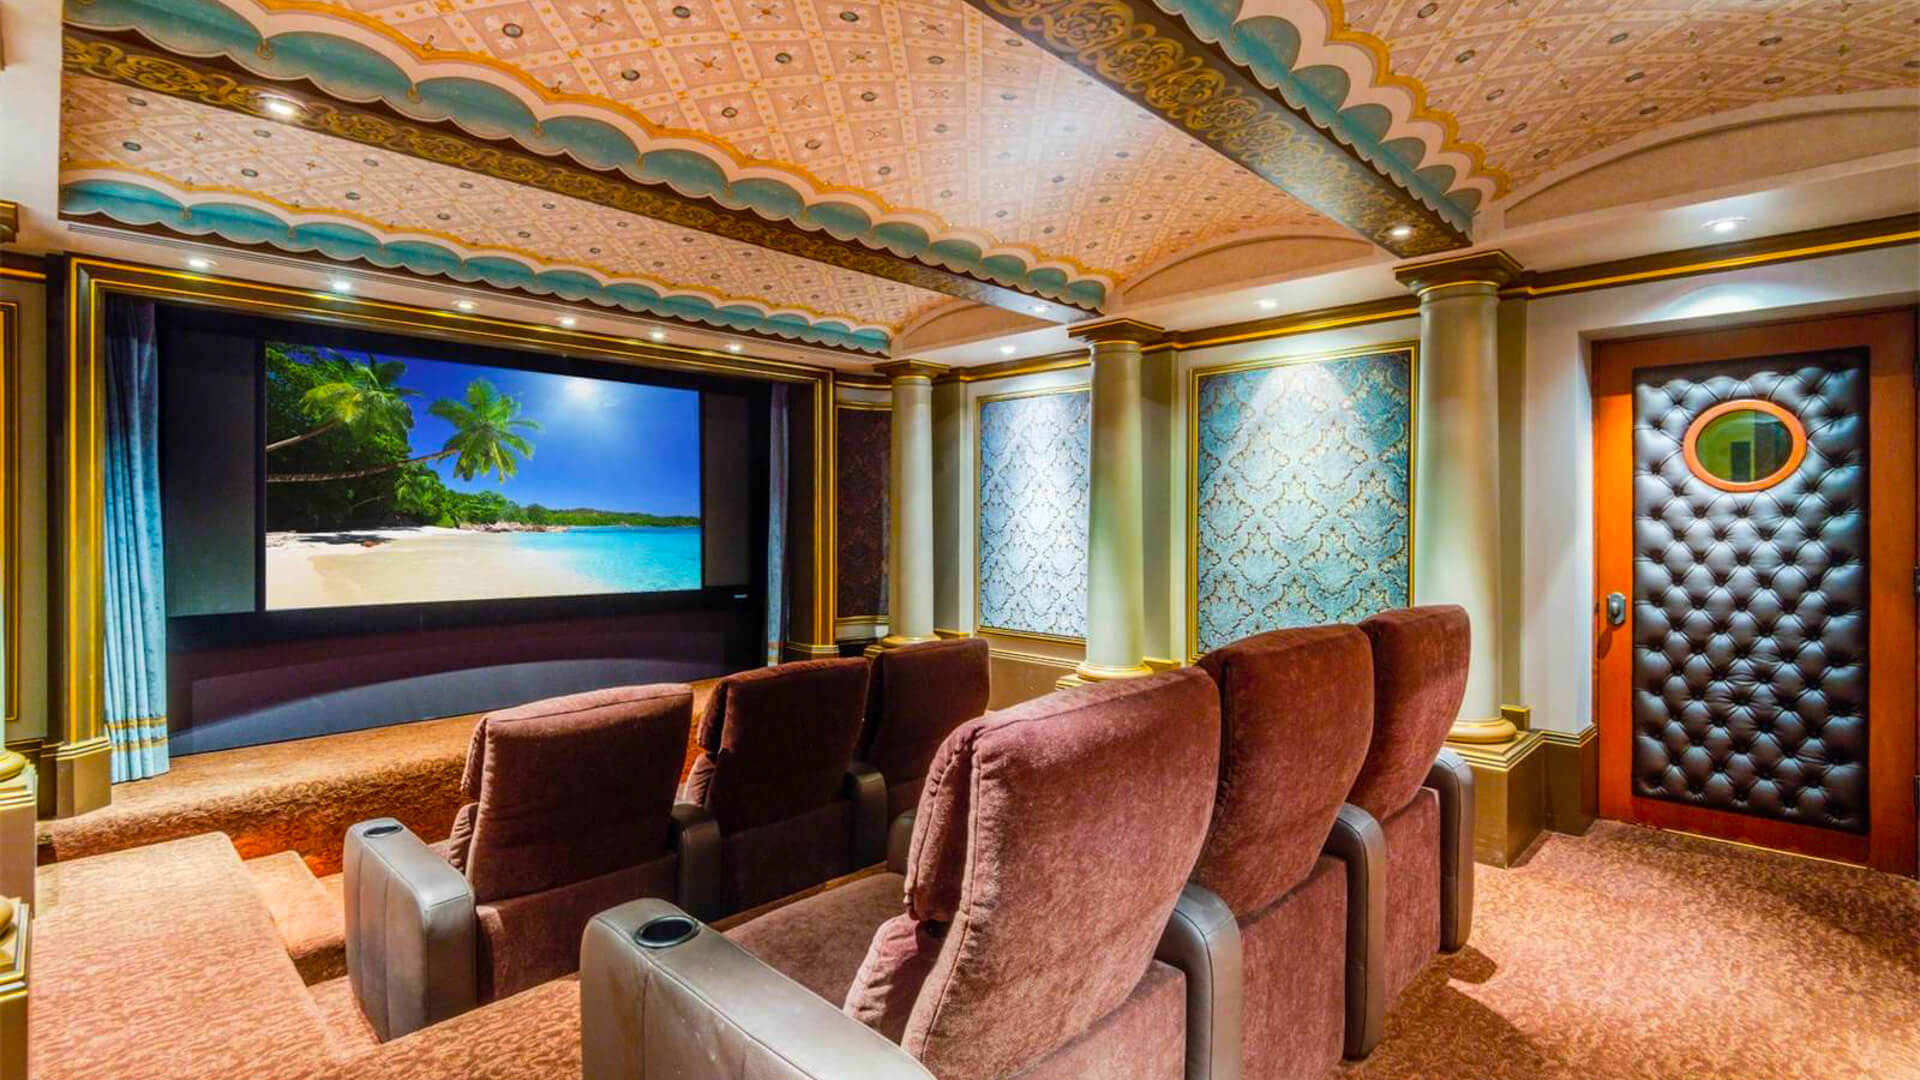 The 13 Most Insane In-Home Movie Theaters Out There